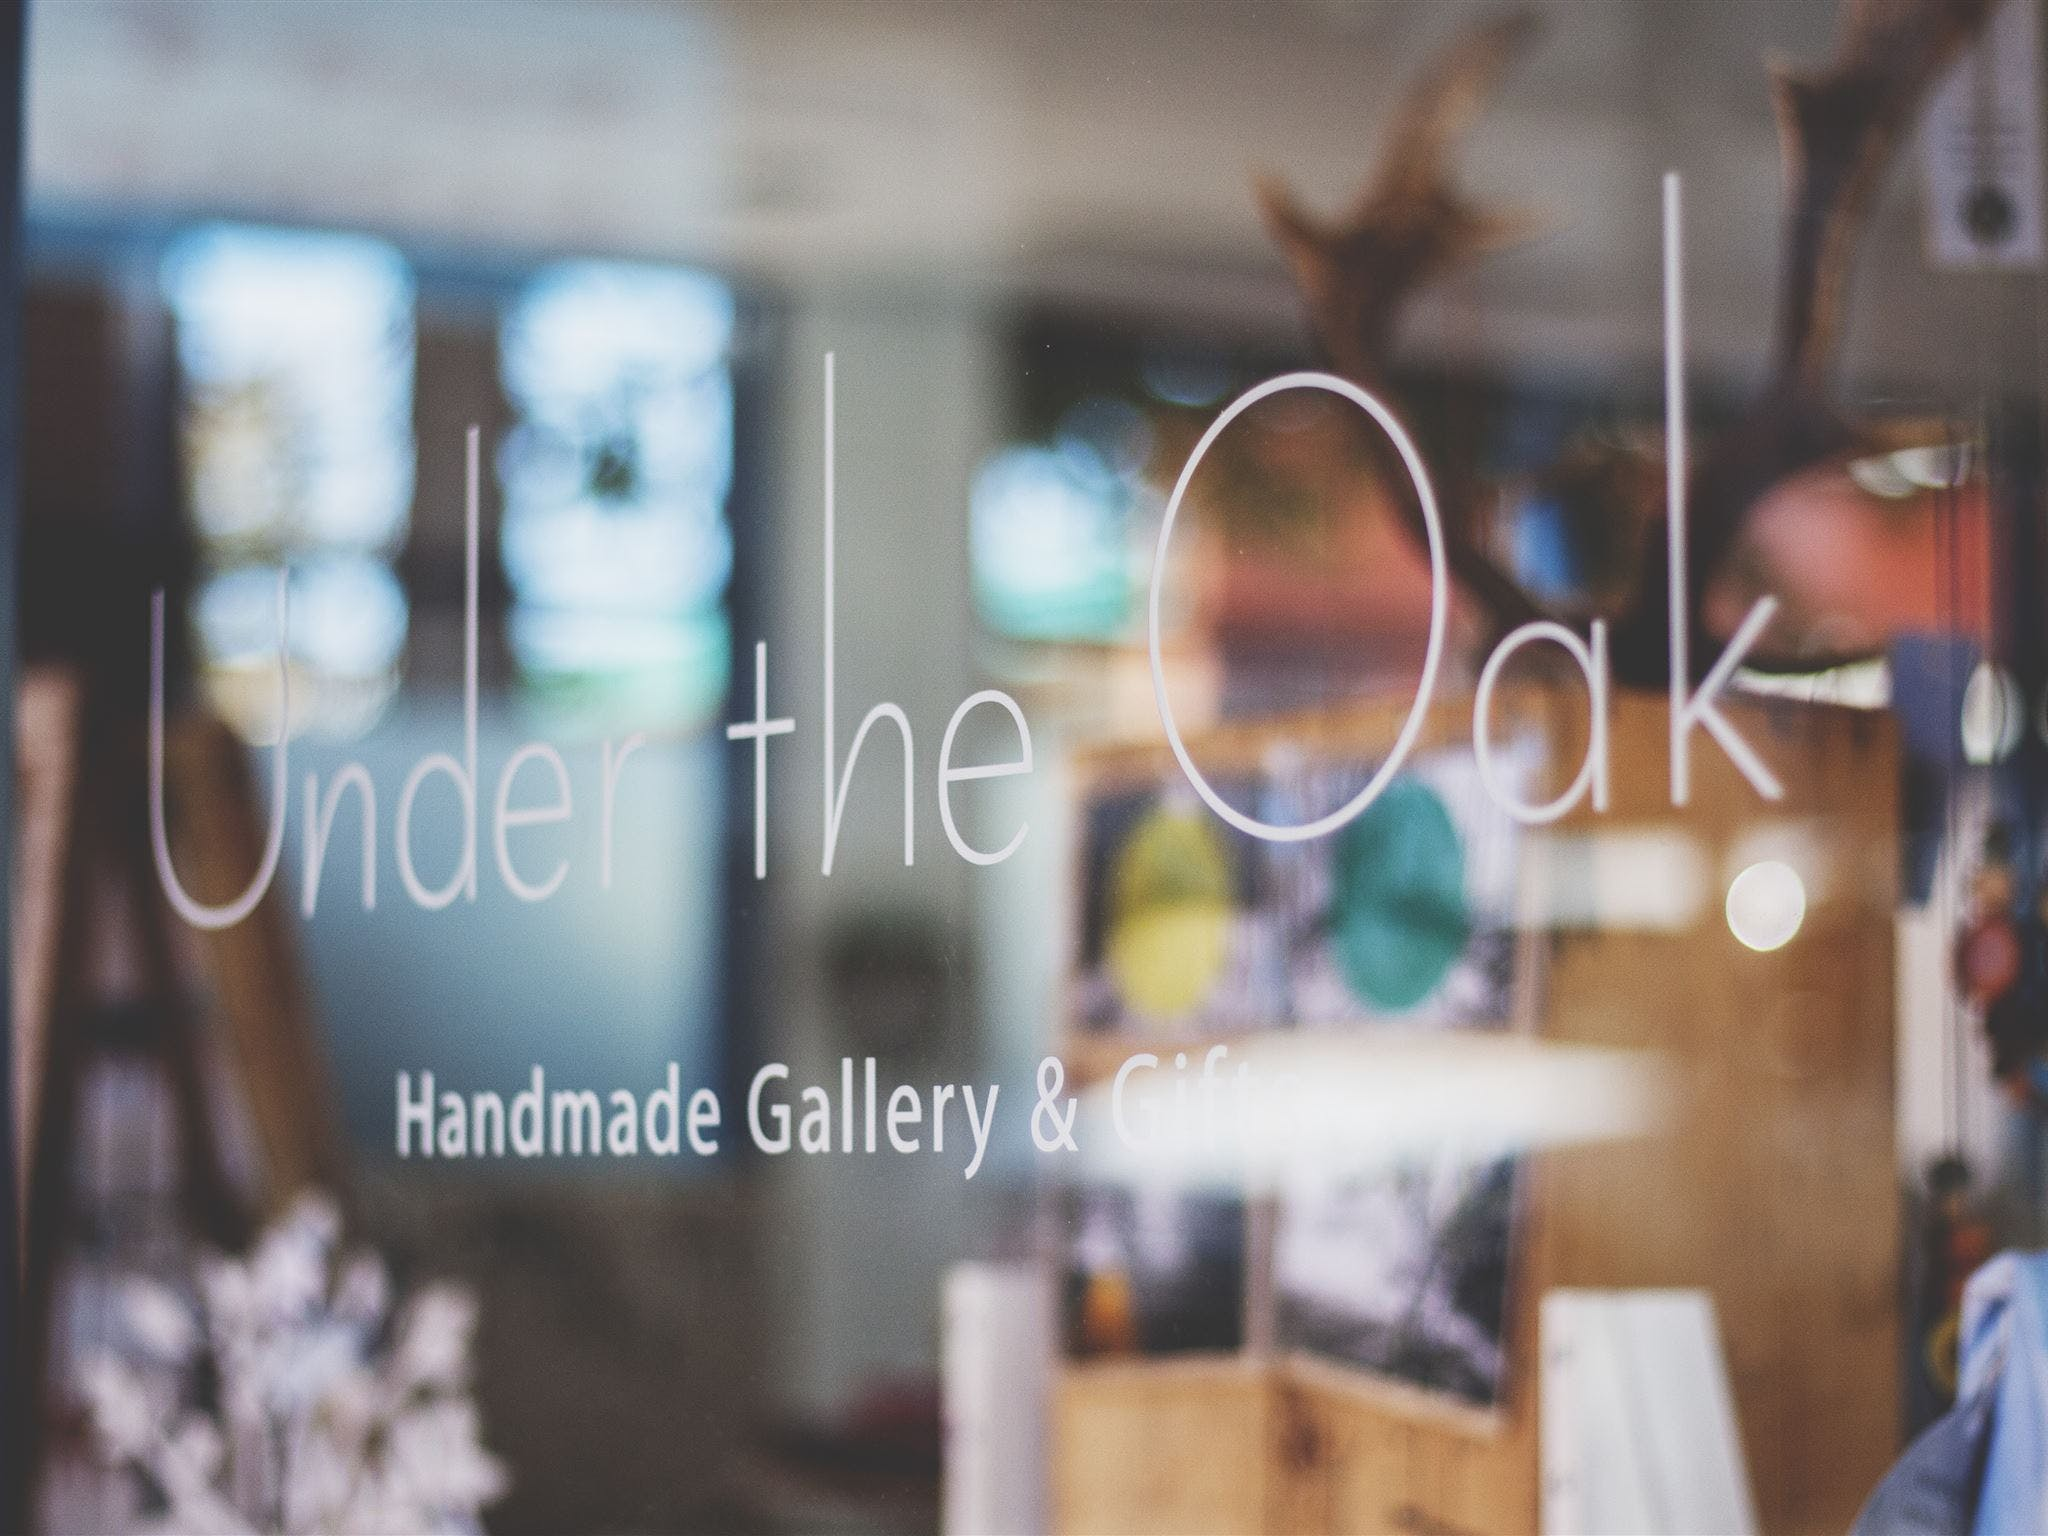 Under The Oak Handmade Gallery and Gifts - Tourism Brisbane